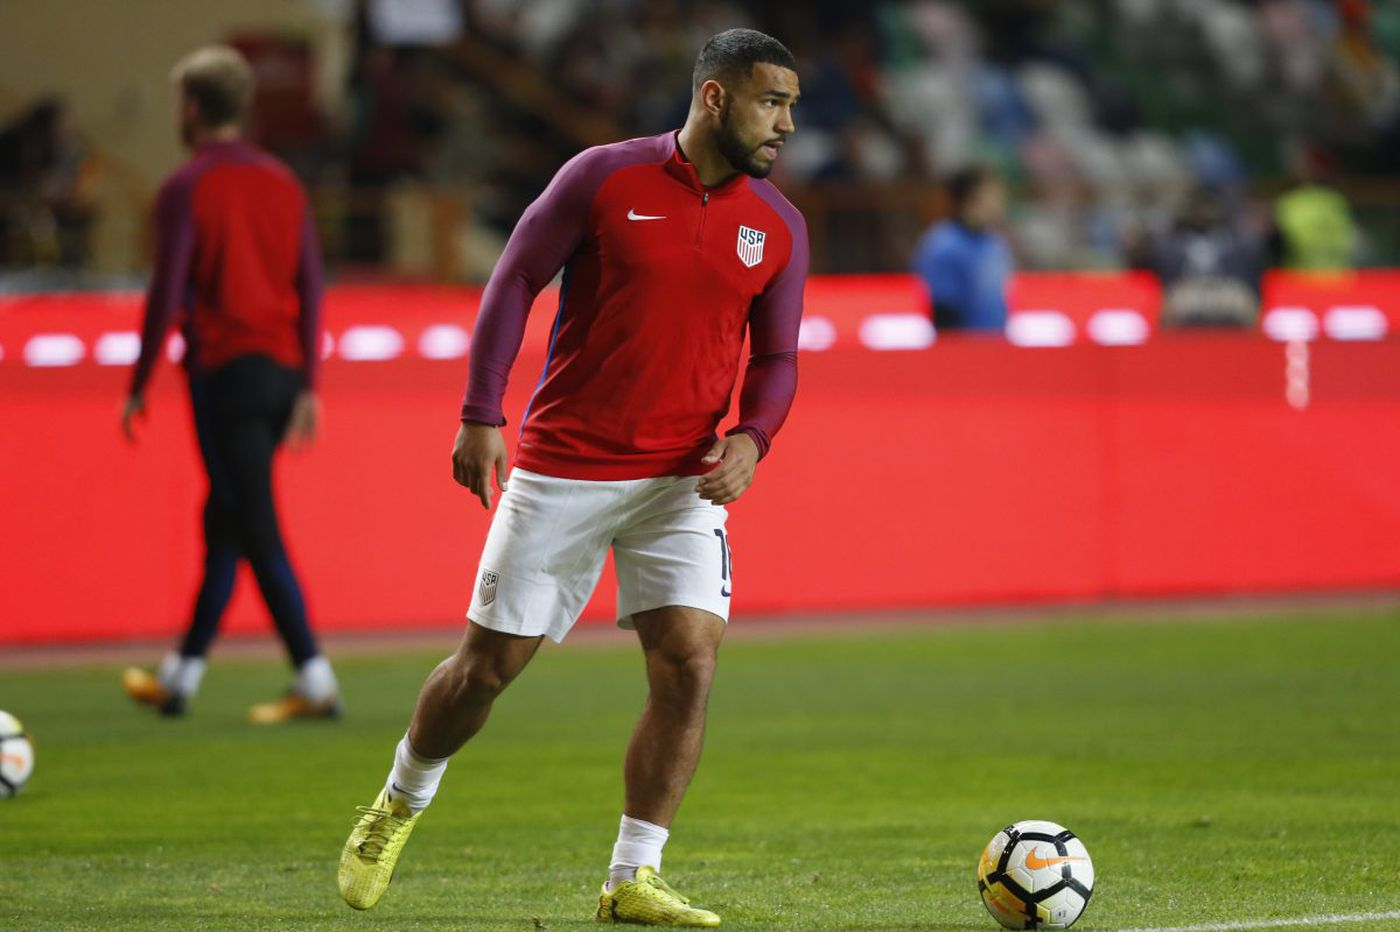 Cameron Carter Vickers Rise To Us National Team Has Been In The